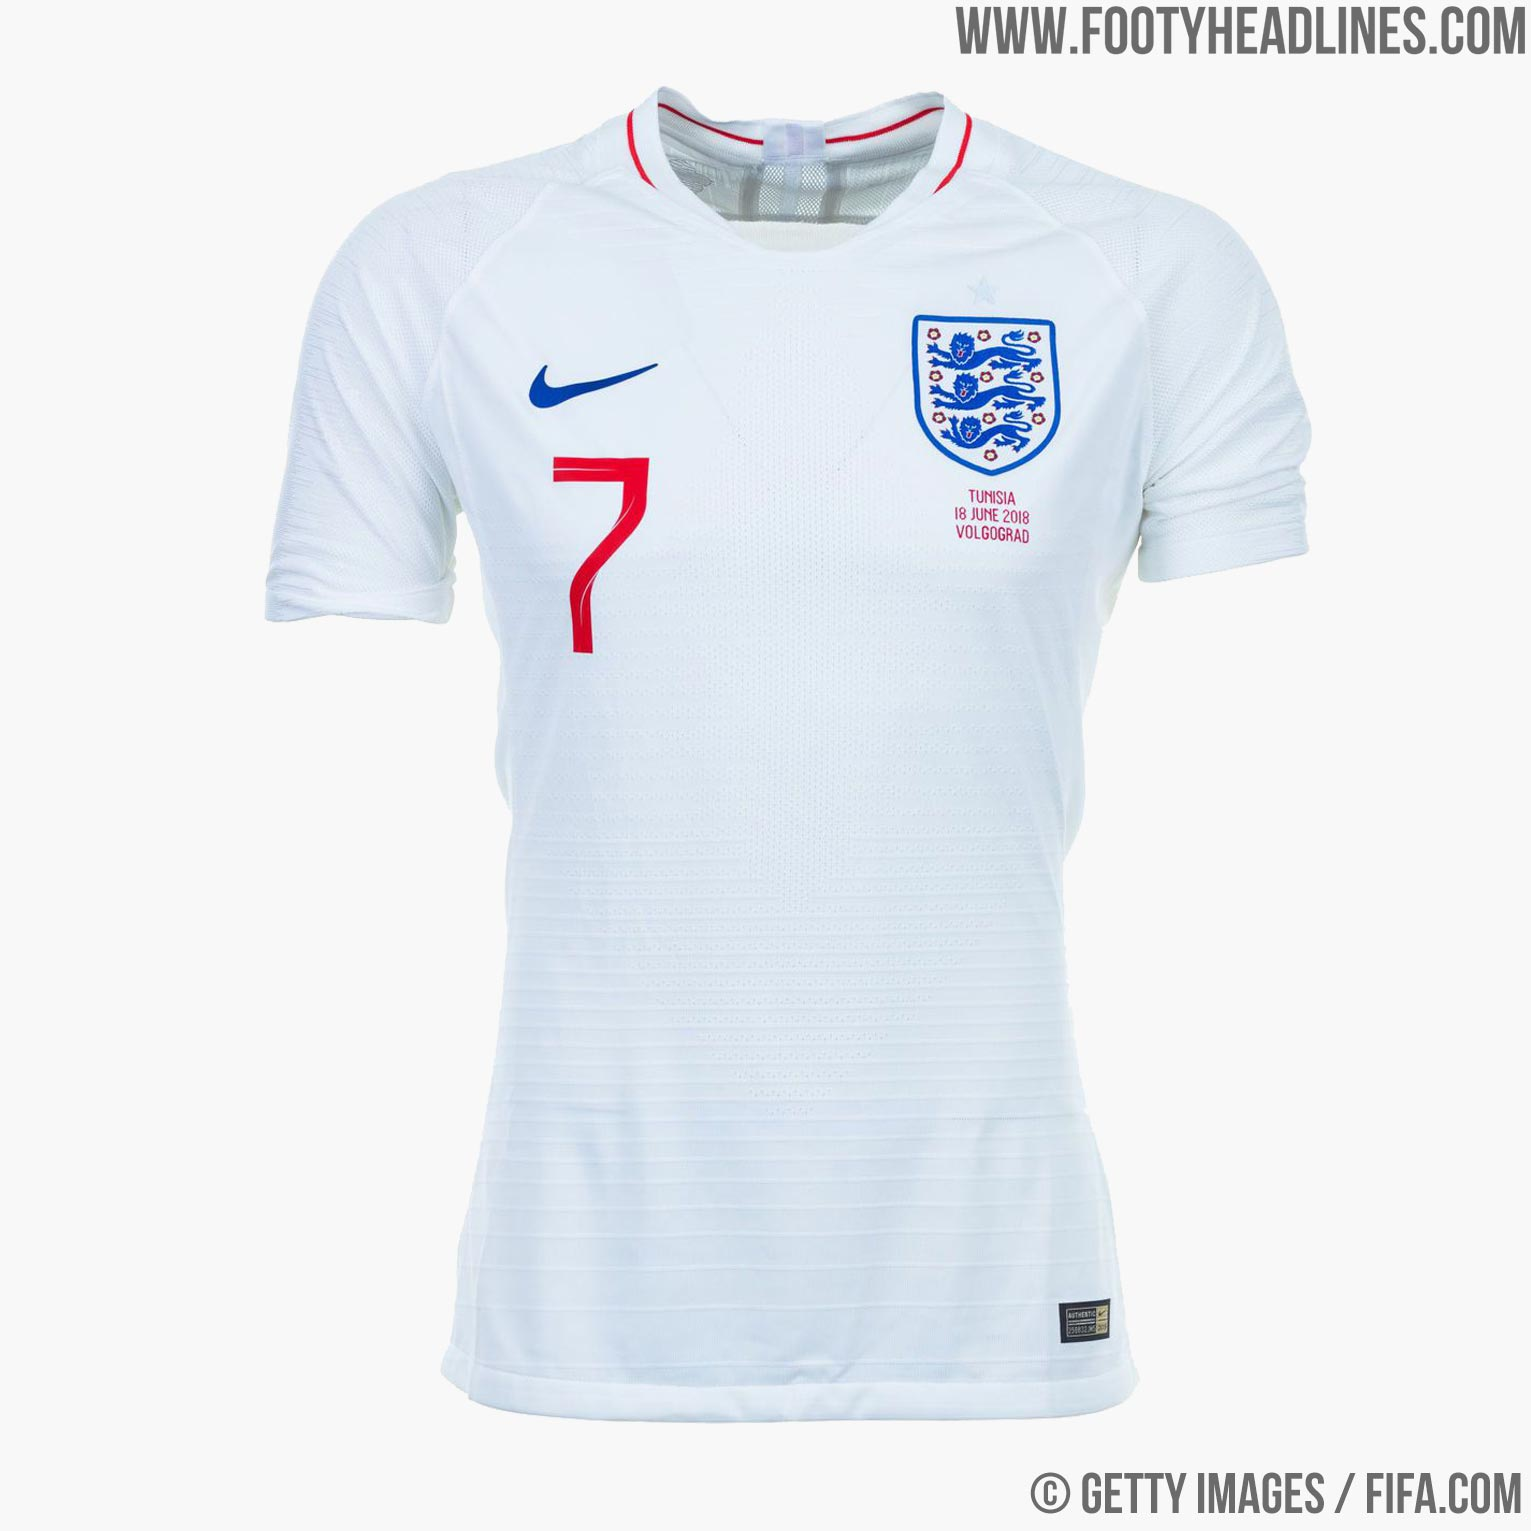 f163db79ee7 England 2018 World Cup Home Kit Buy now. Free UK shipping - worldwide  delivery